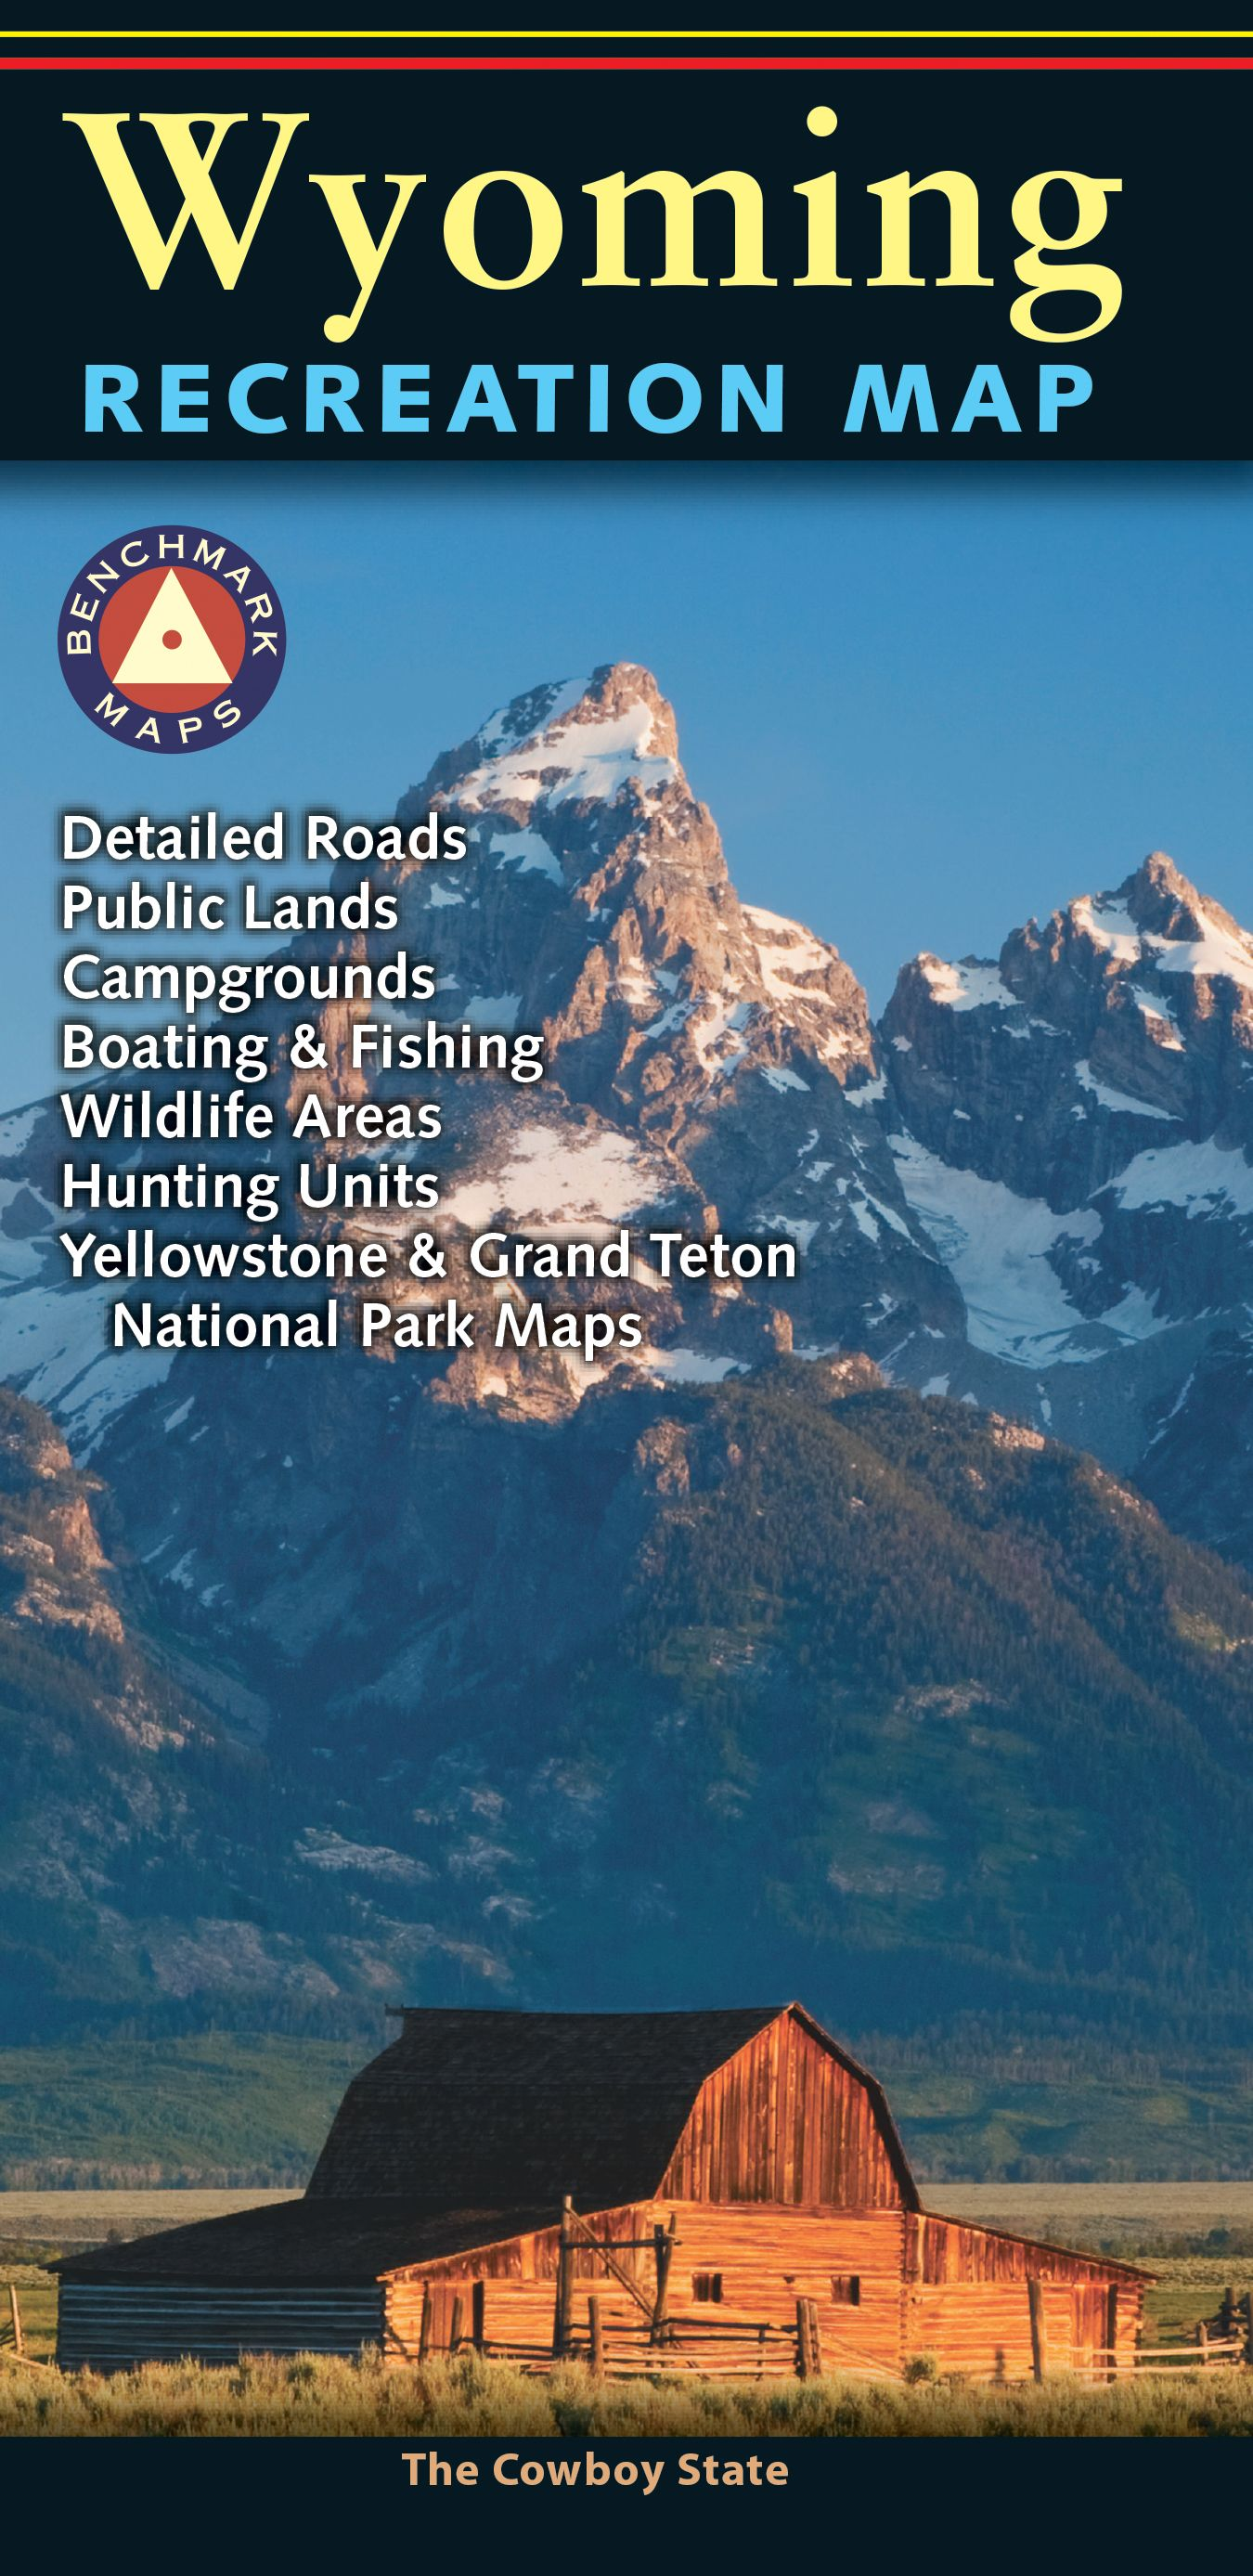 The Wyoming Recreation Map Is A Folded Map Derived From